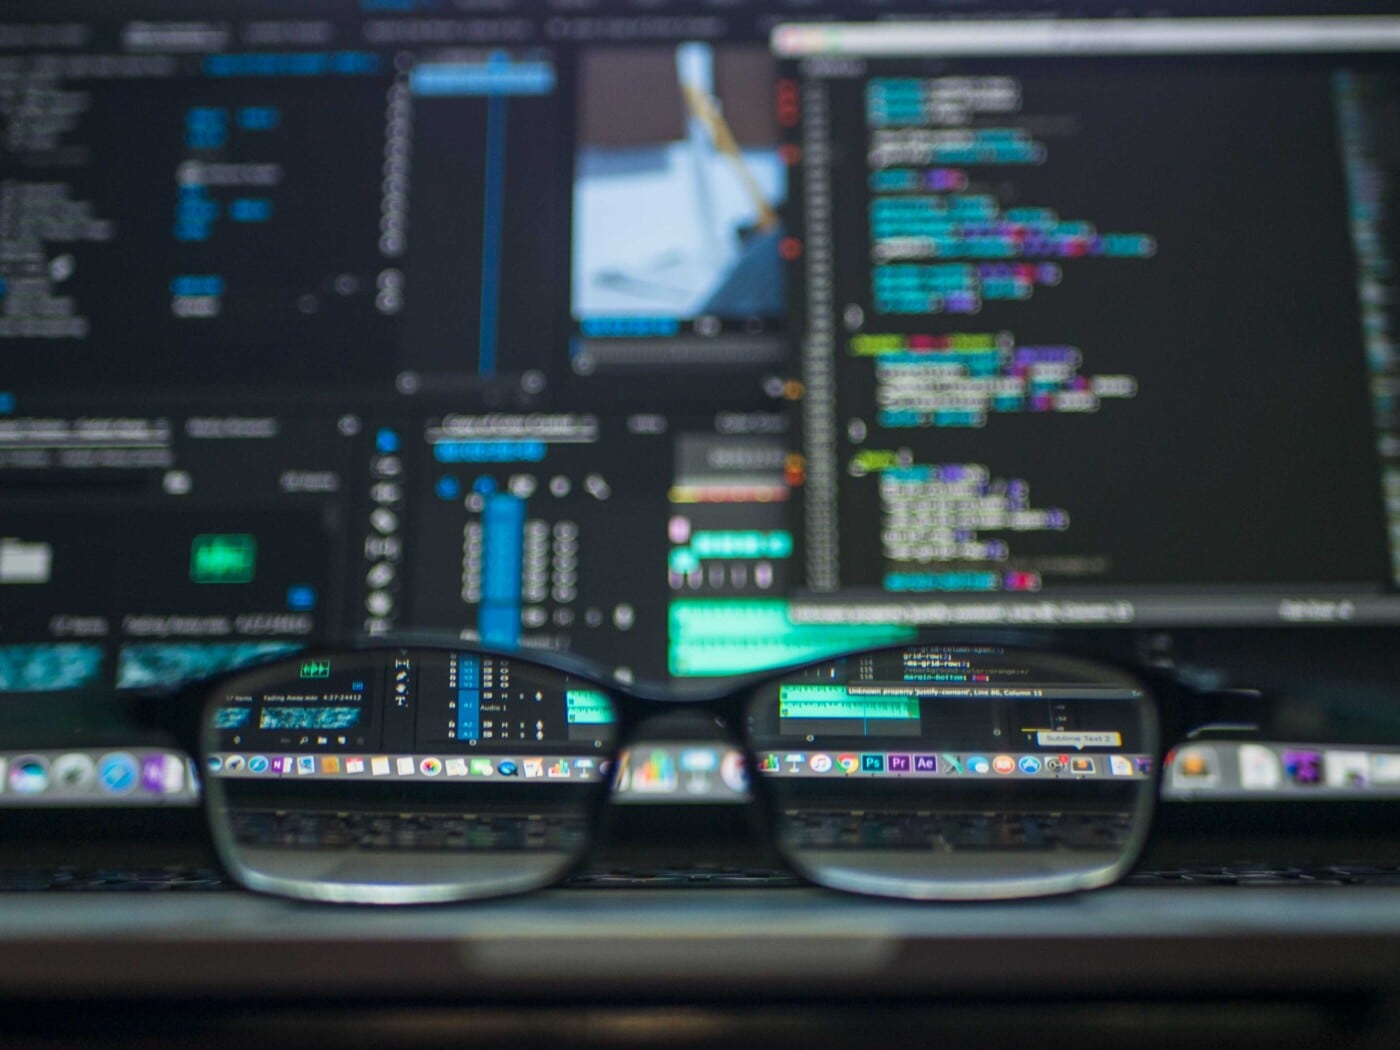 glasses sitting in front of computer monitors with code